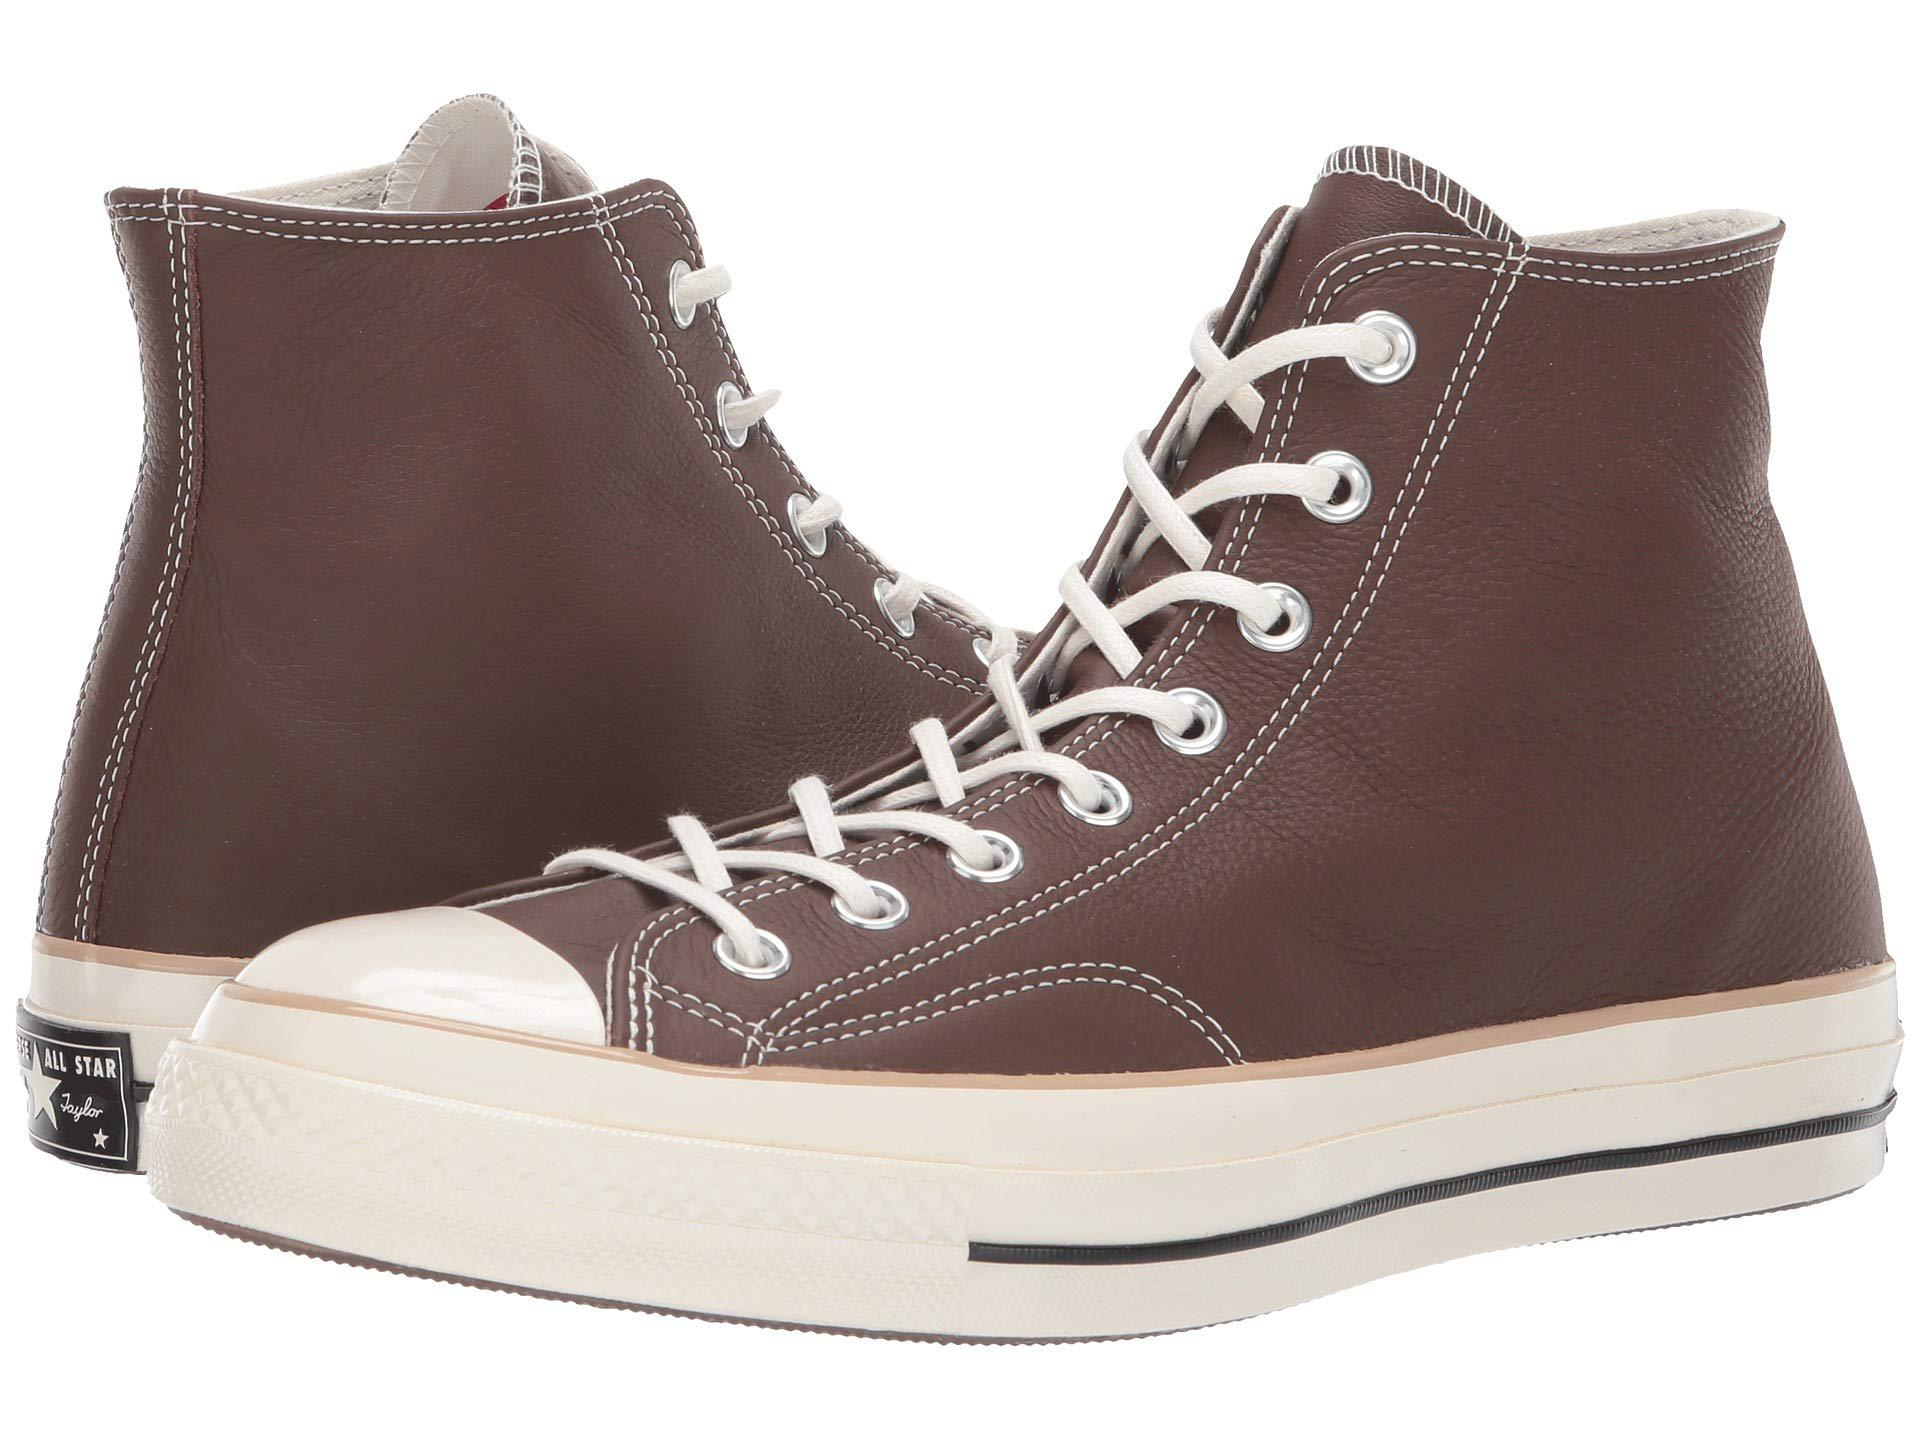 53c0b7829bb911 Lyst - Converse Chuck 70 Leather - Hi in Brown for Men